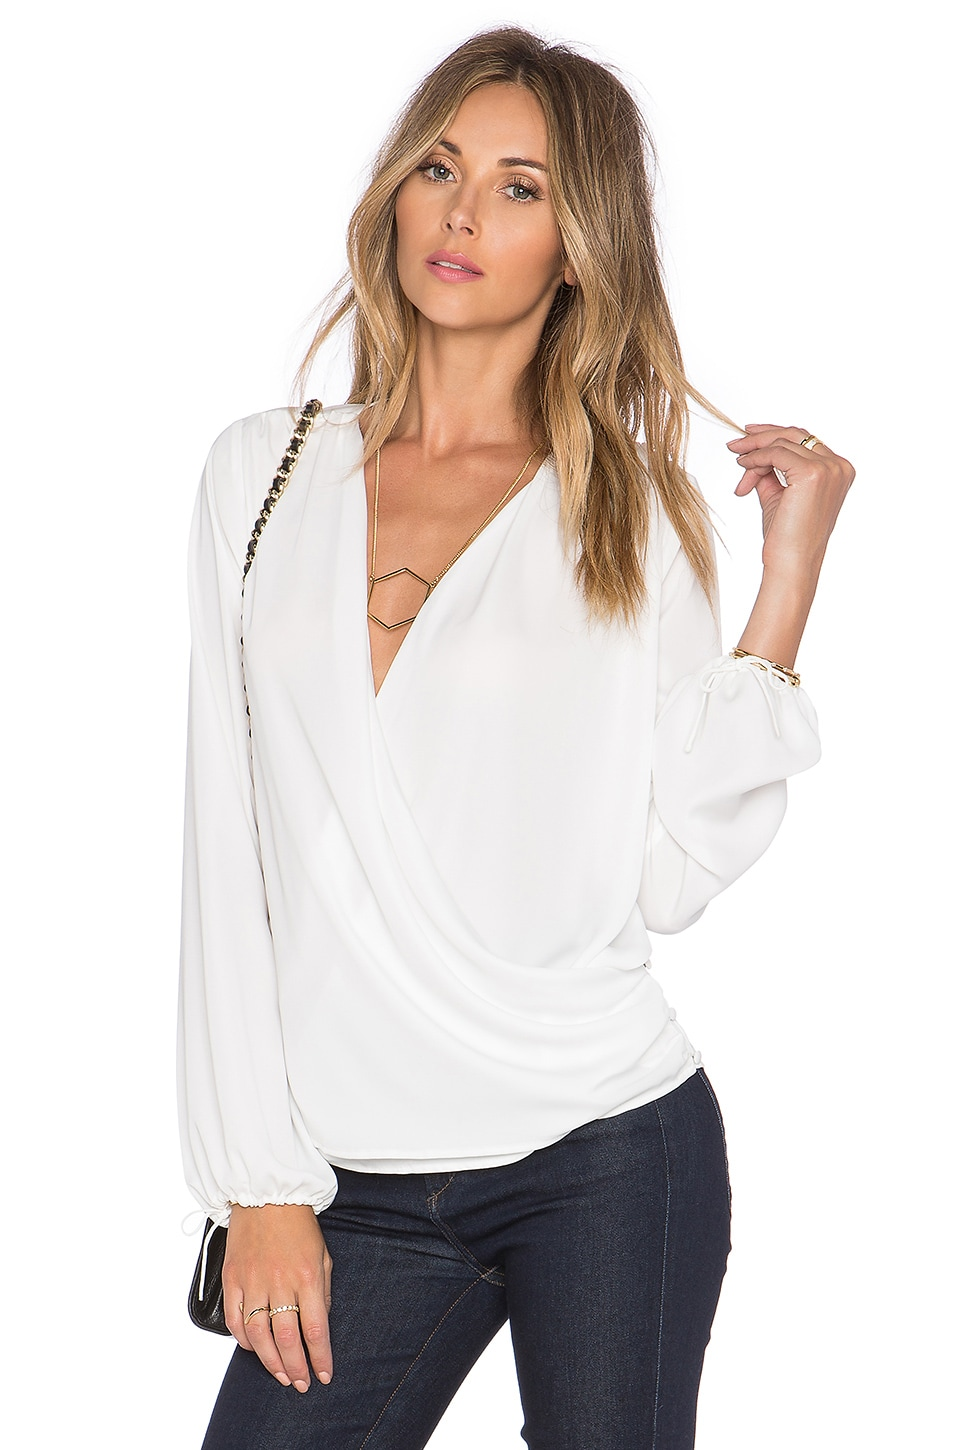 L'Academie The Wrap Blouse in Ivory | REVOLVE